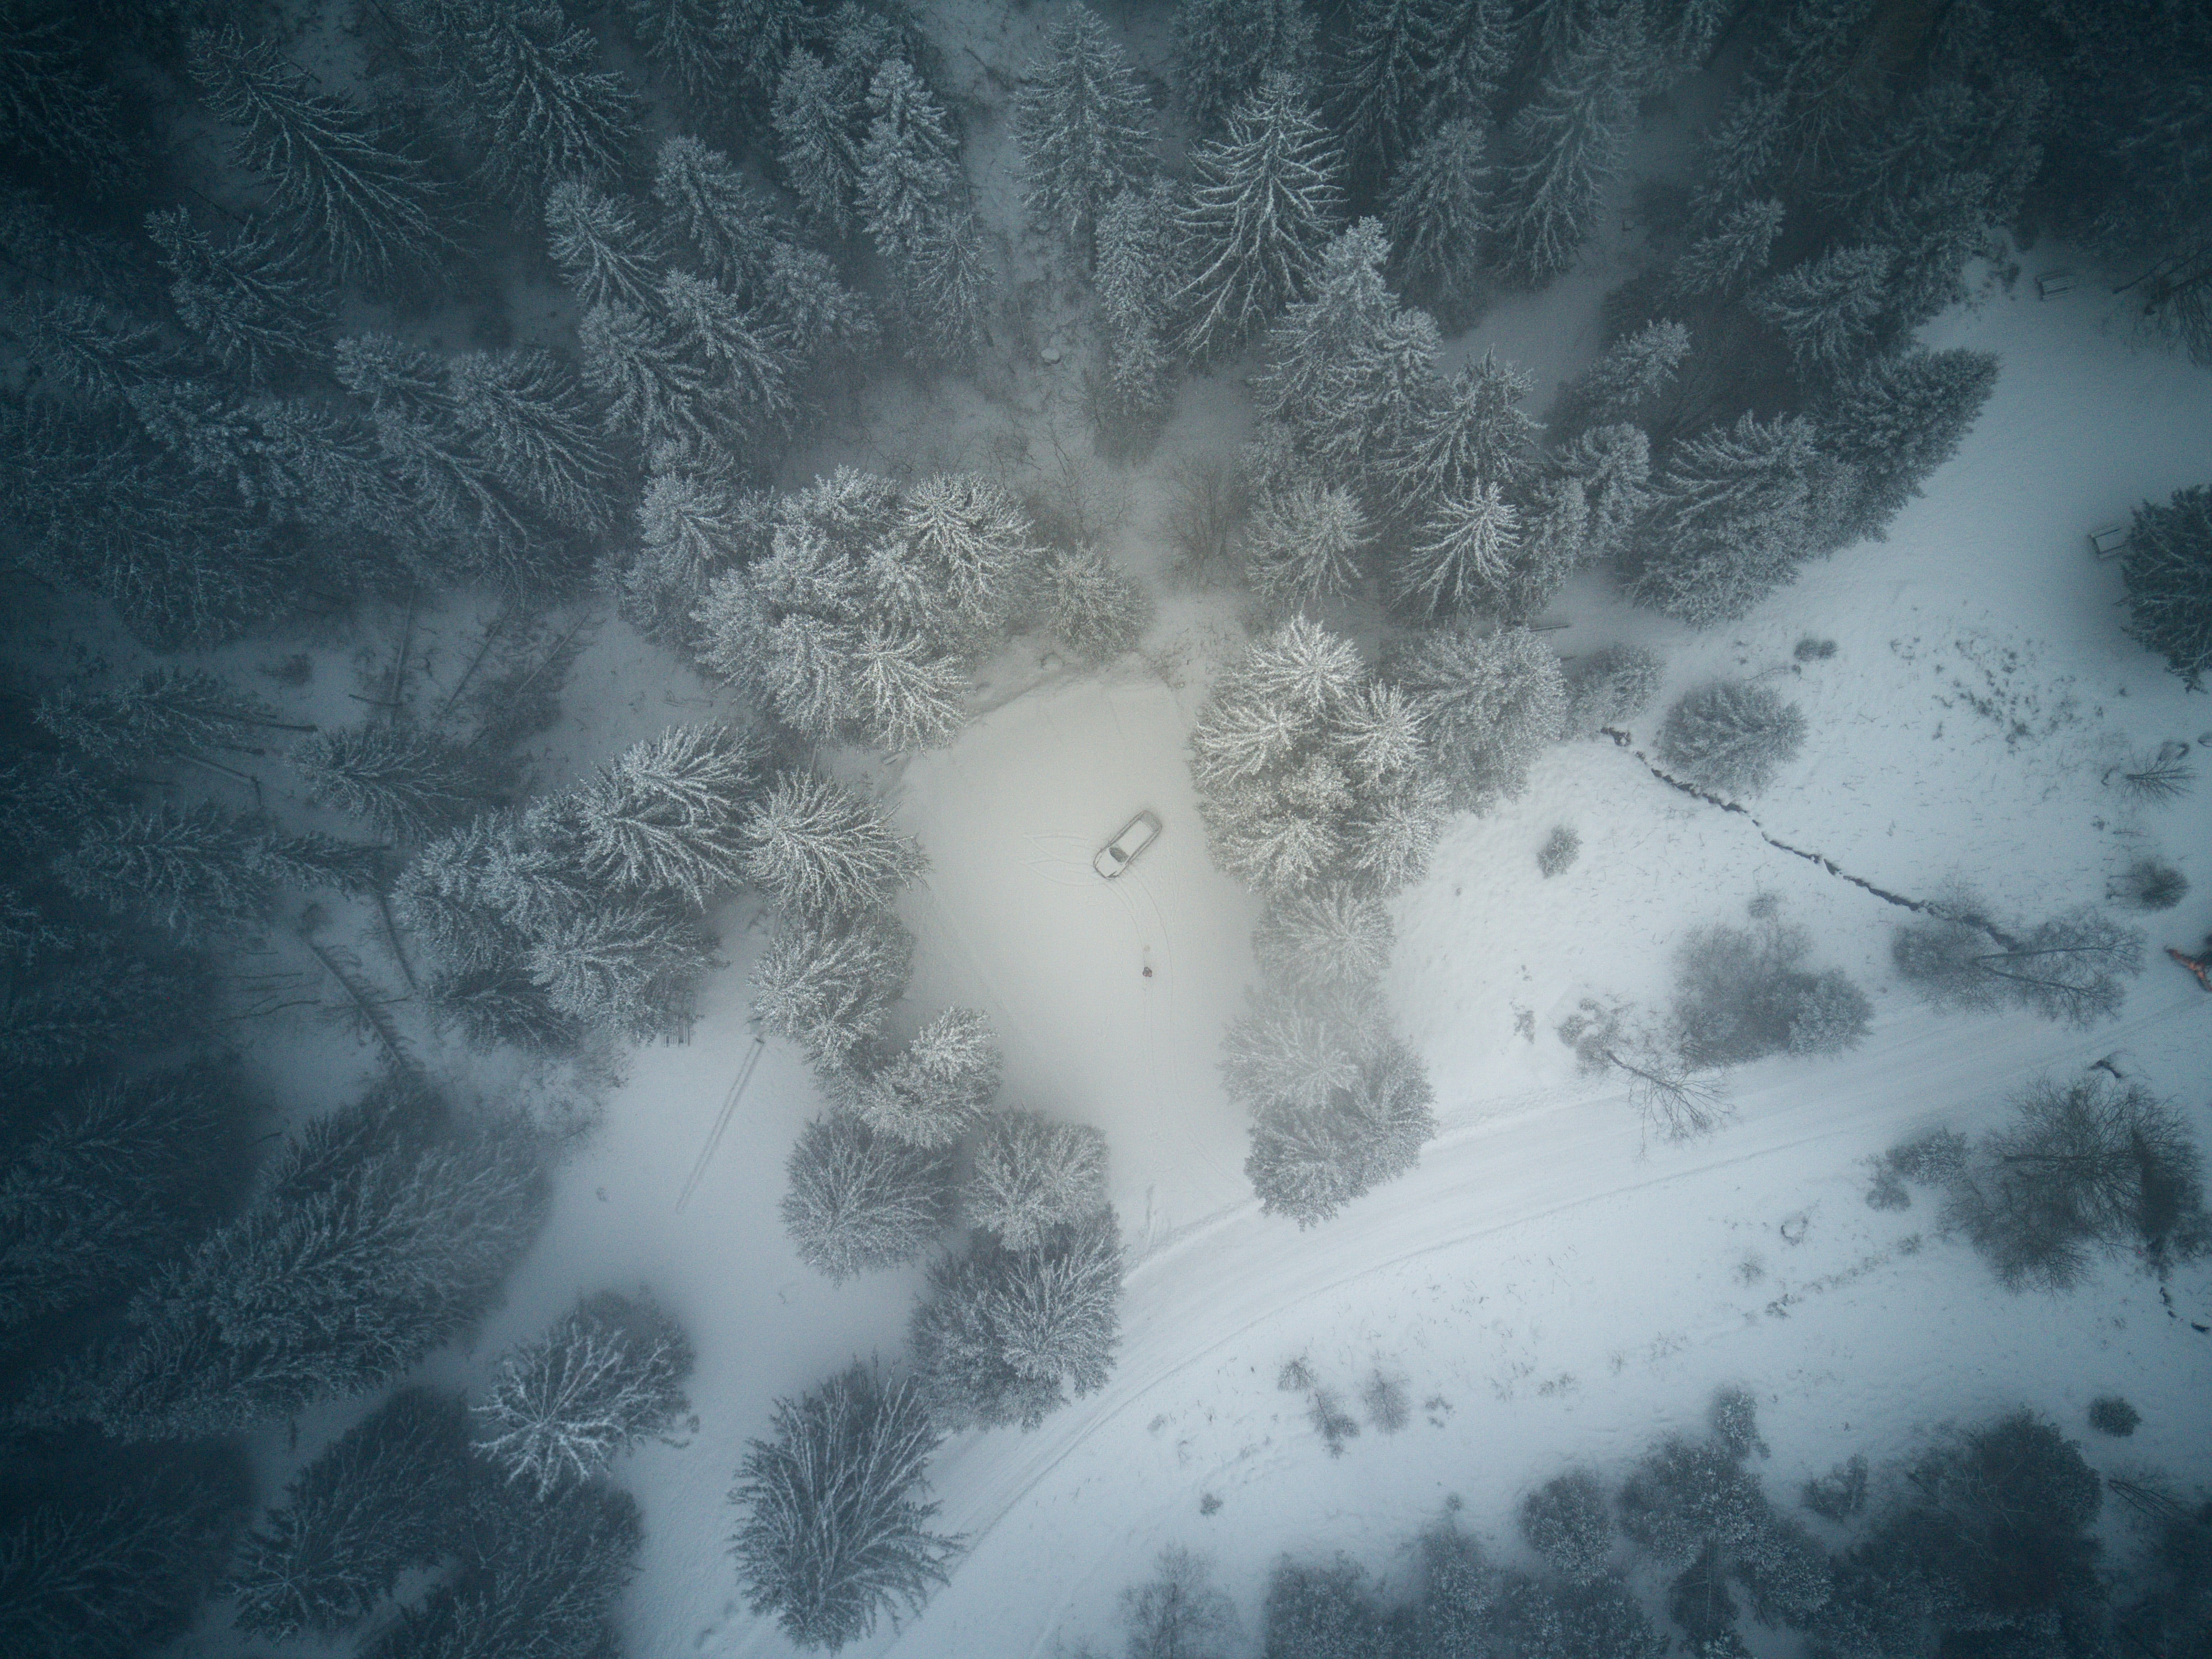 bird's eye view of vehicle stocked on snow between trees